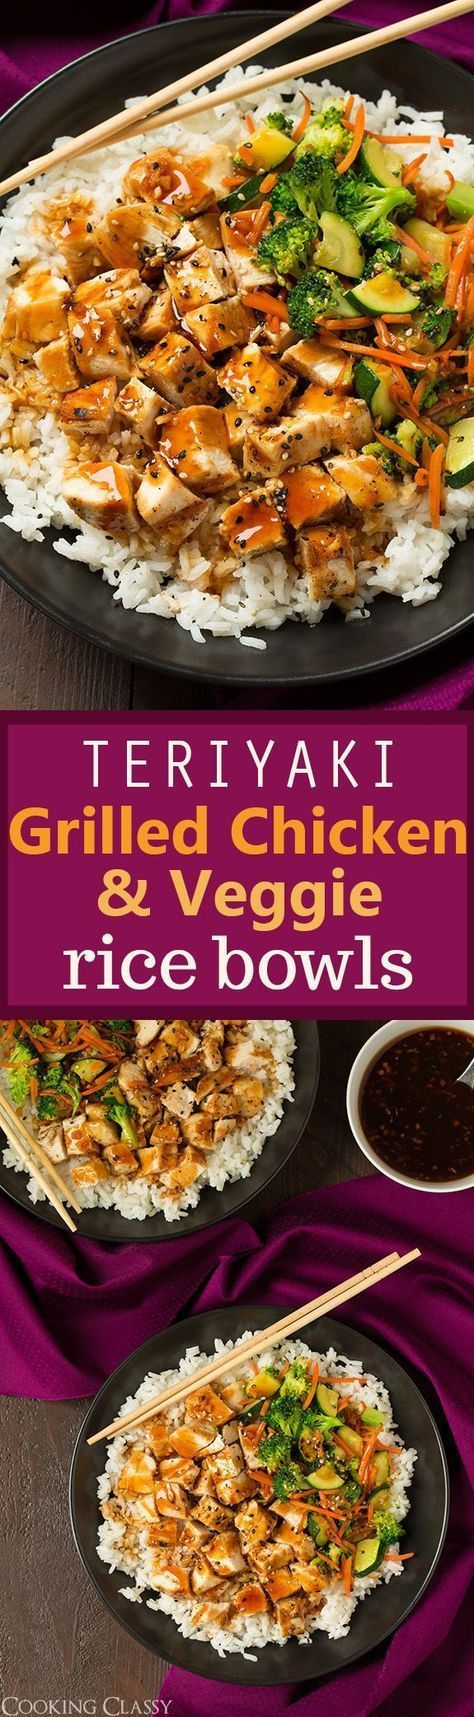 Teriyaki Grilled Chicken and Veggie Rice Bowls - hearty, healthy and totally delicious! The easy teriyaki sauce recipe is perfect!